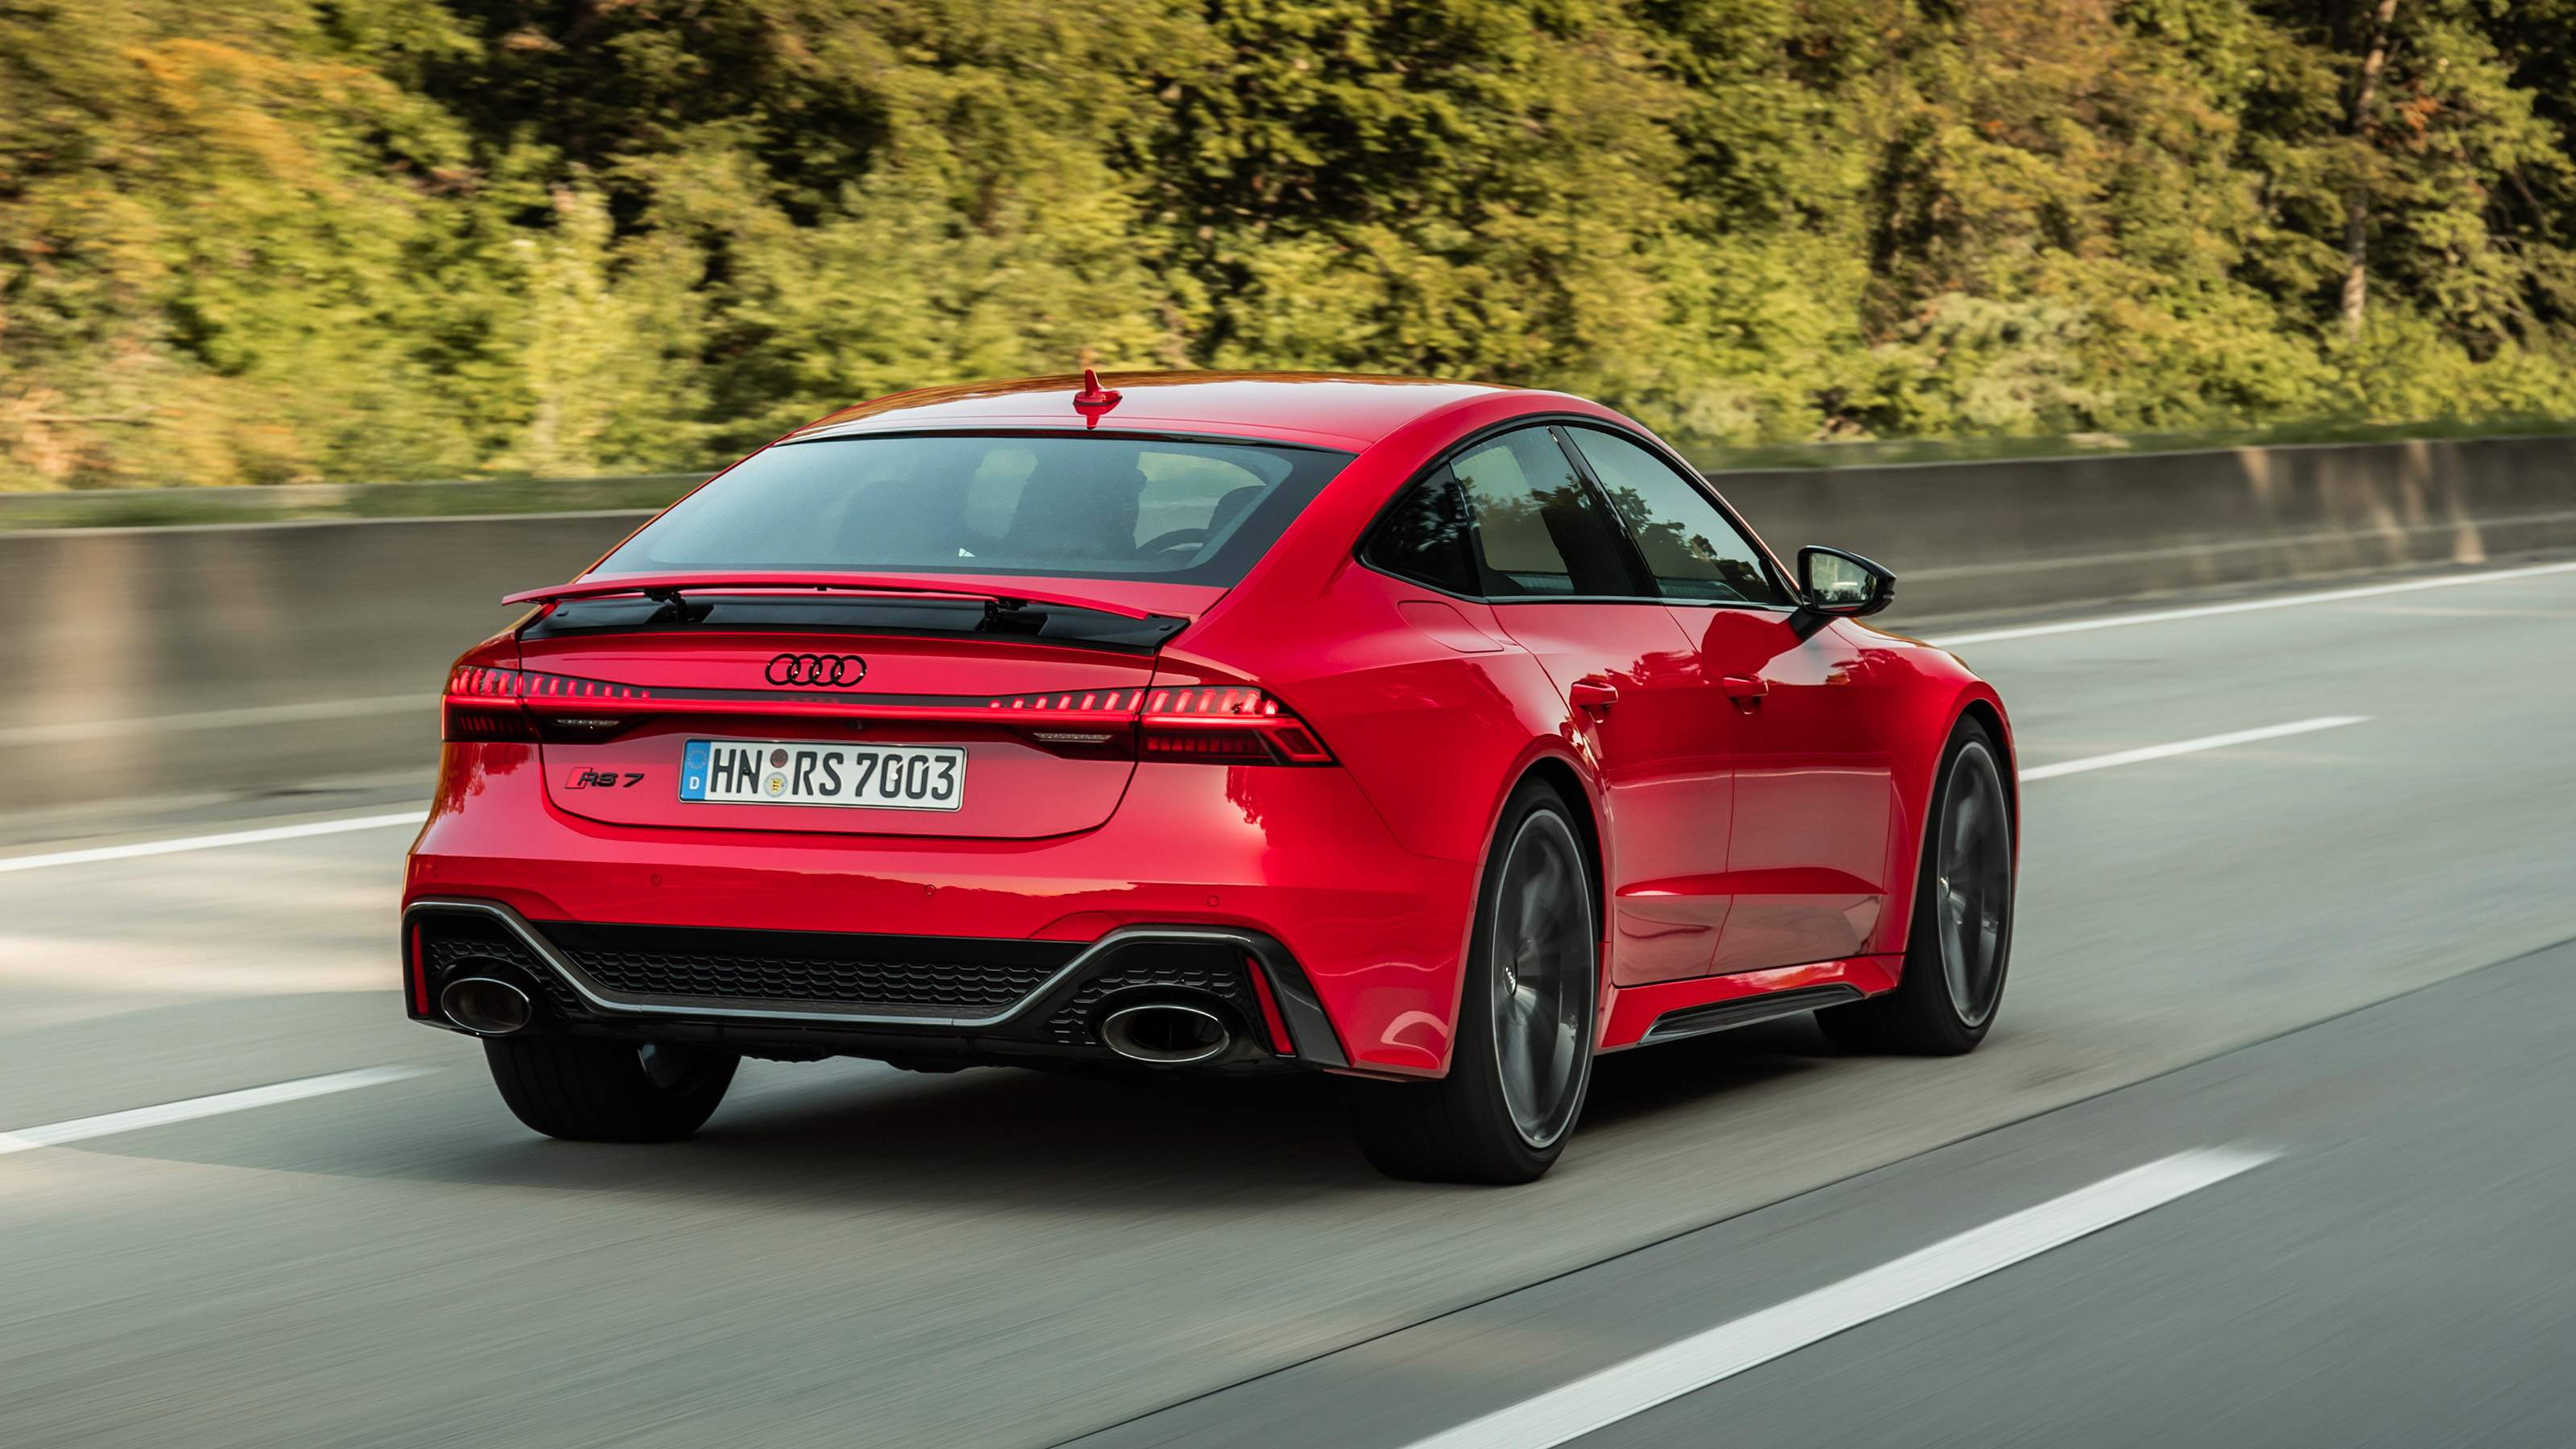 New Audi RS7 review - big 4-door surprises with agility and pace | Evo